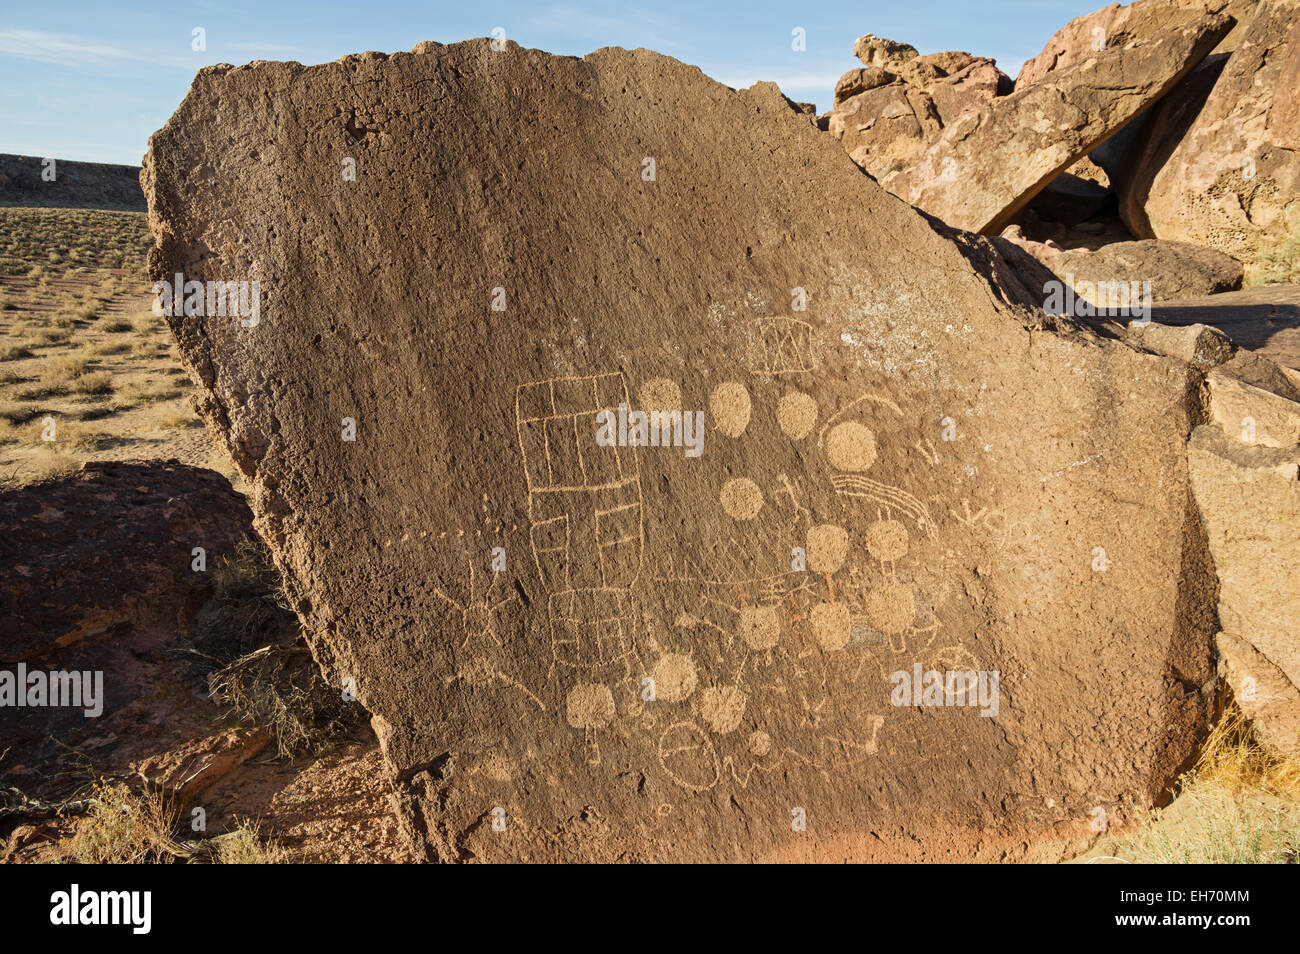 petroglyphs carved into volcanic tuff rock on the volcanic tableland near Bishop California - Stock Image